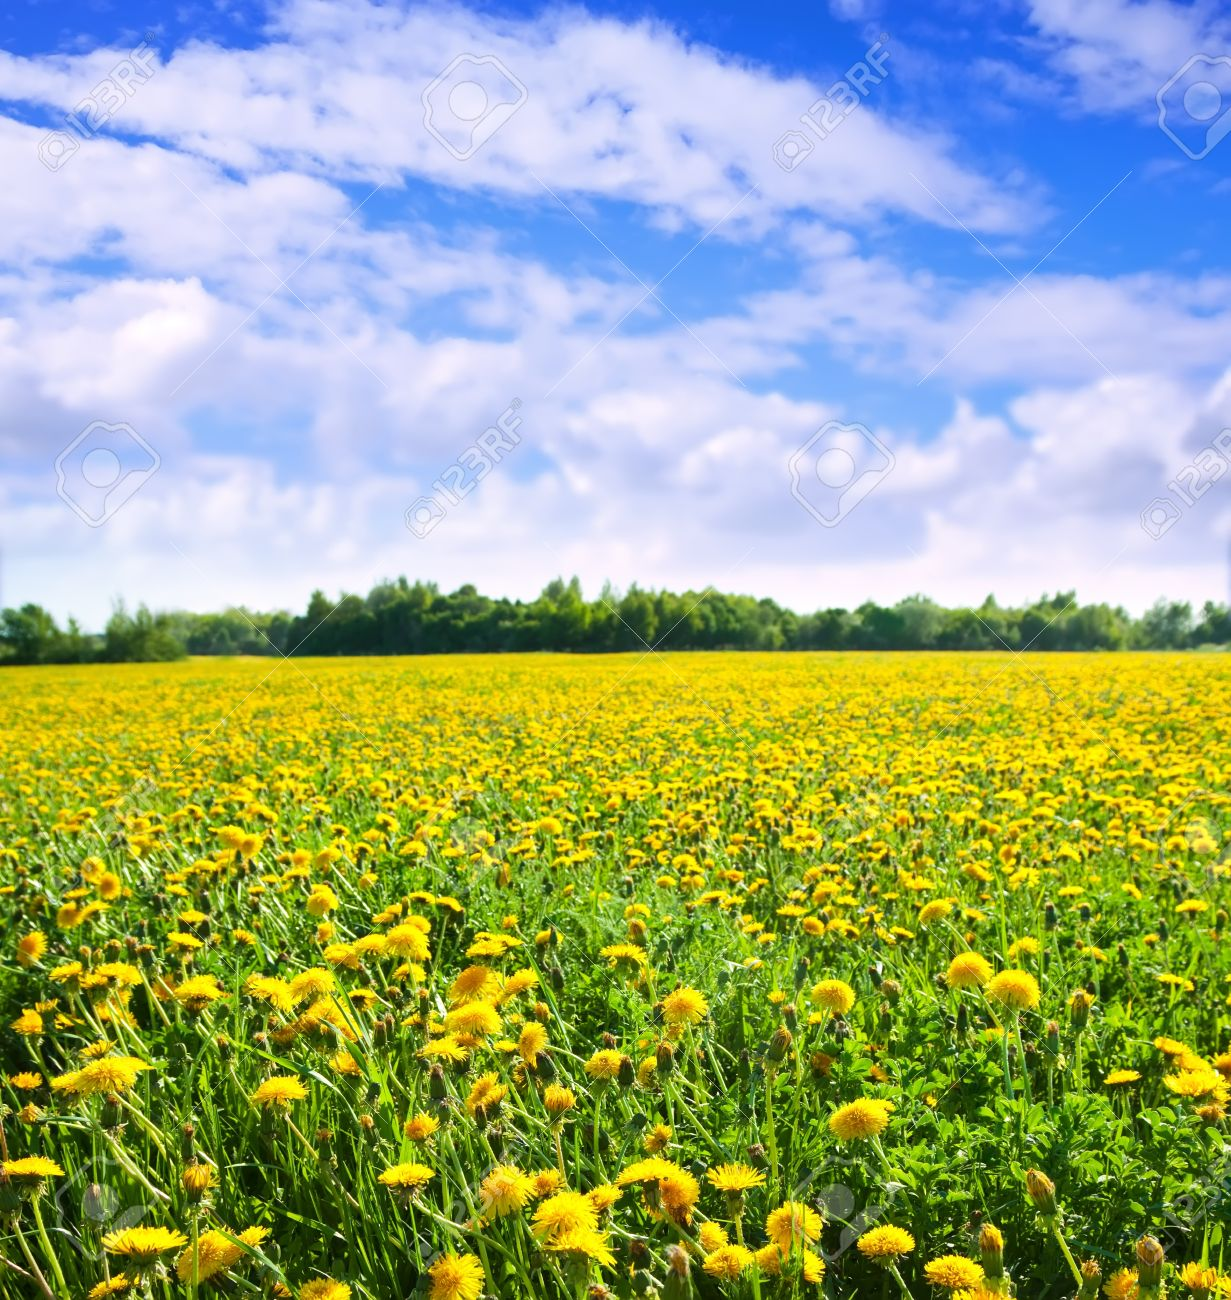 Summer landscape with dandelions meadow in sunny summer day Stock Photo - 9854954